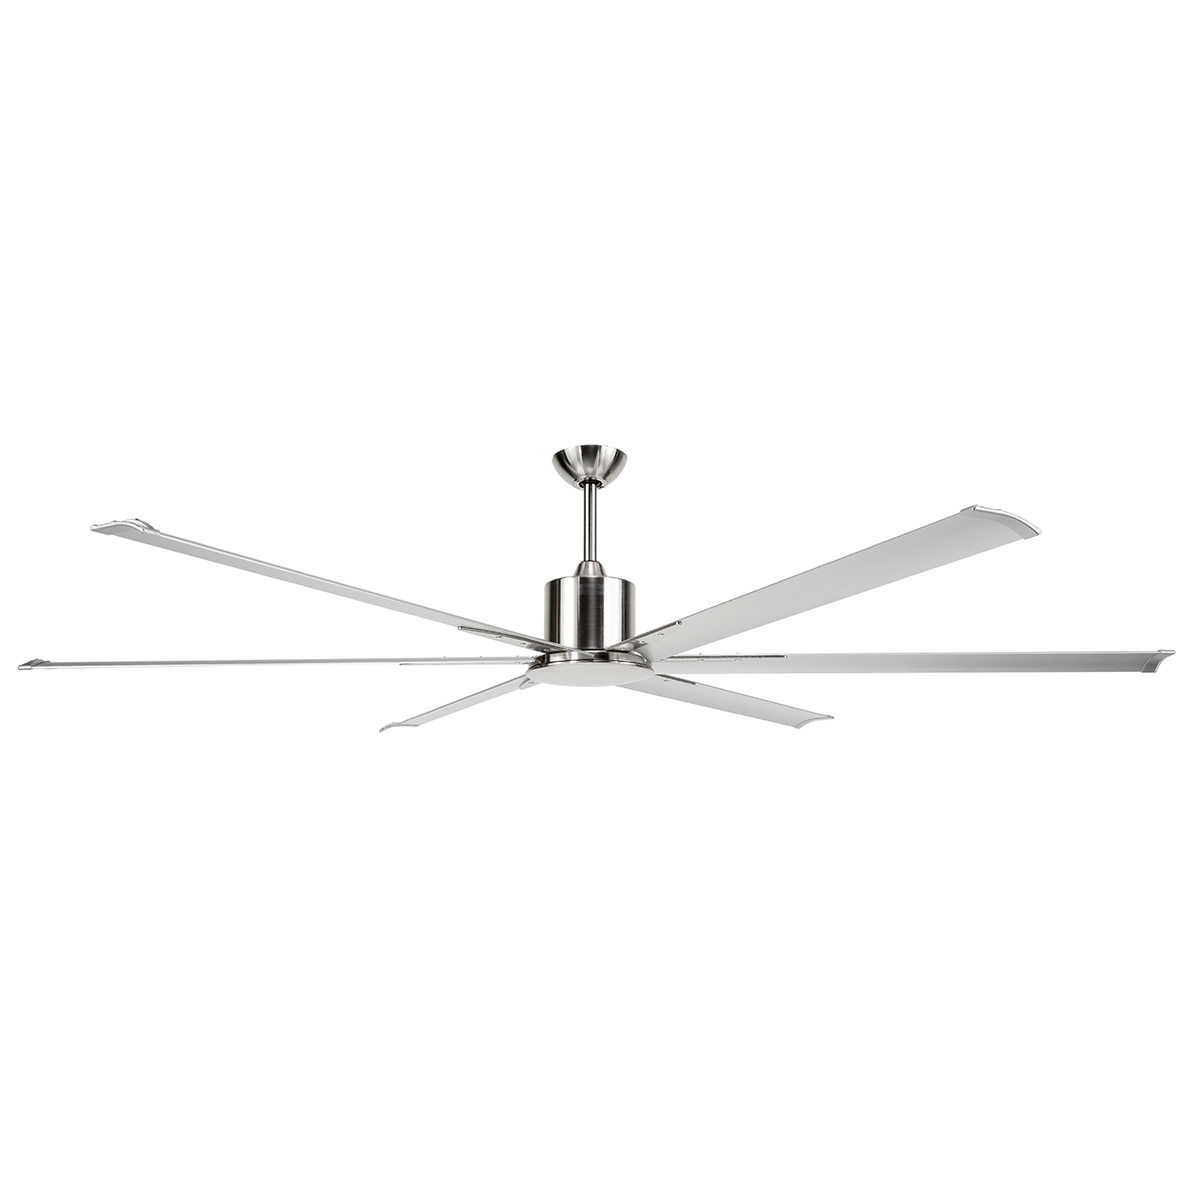 Large ceiling fans big fans for large rooms lumera living 31 maelstrom silver main aloadofball Gallery